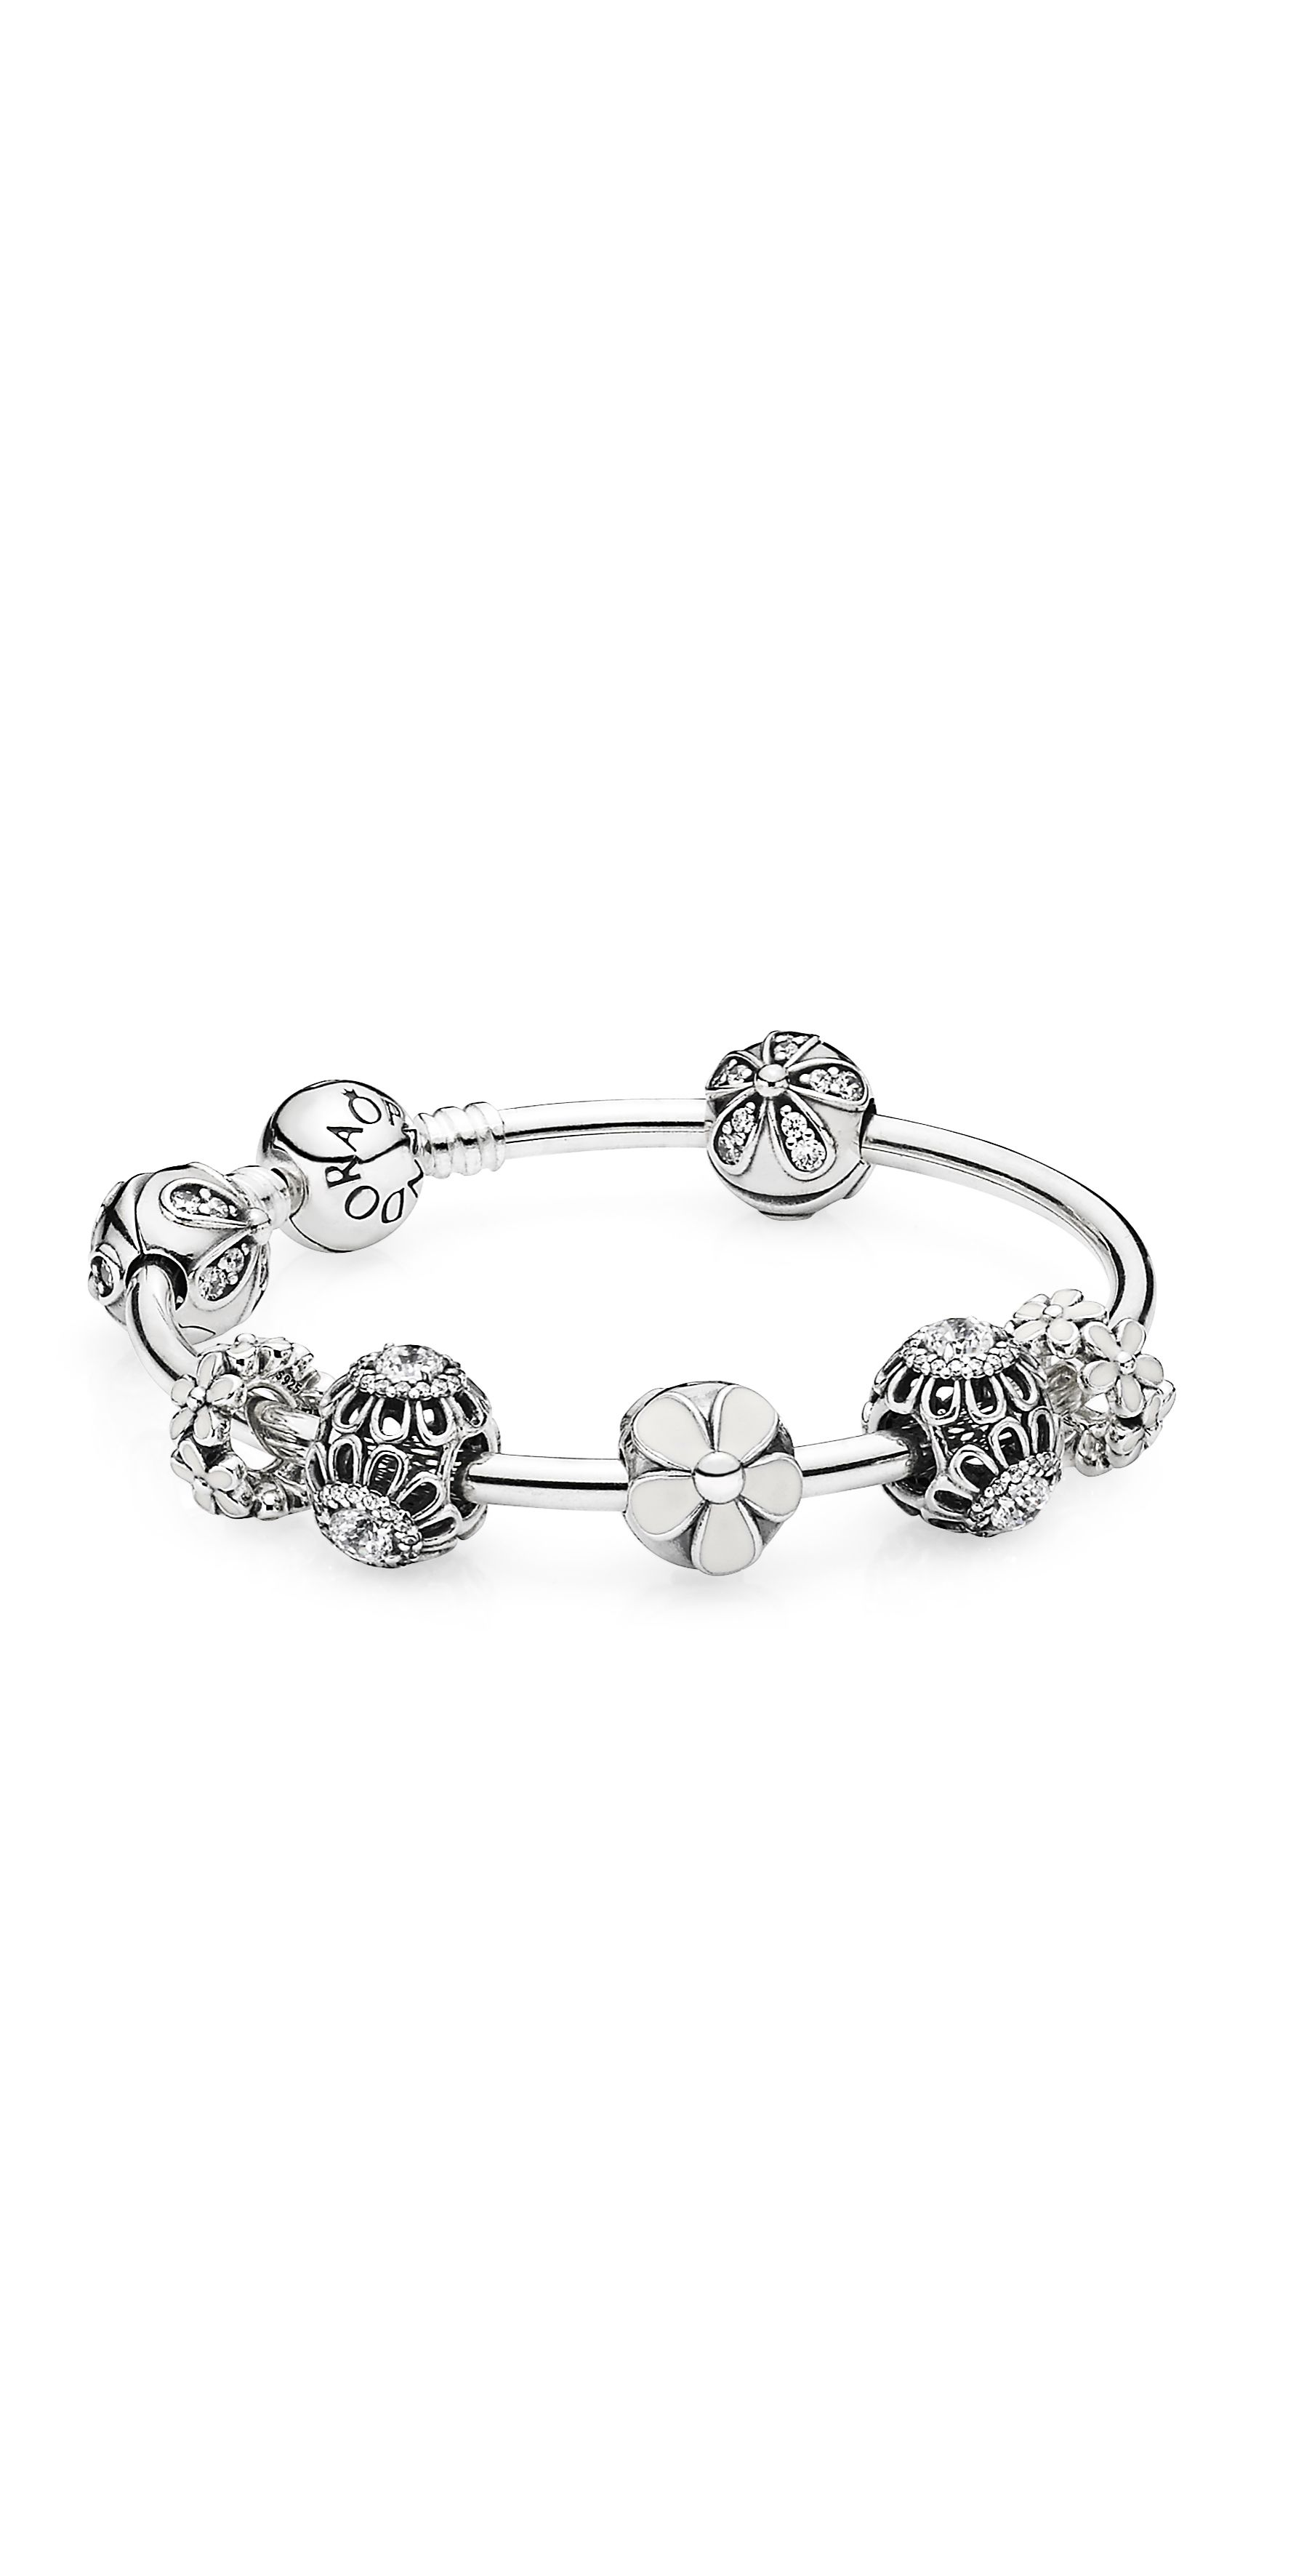 it bought all pandora zirconia silver philippines can worth you bracelet cubic like he for charm but with as the costs in other clear beauty get is about countries australia